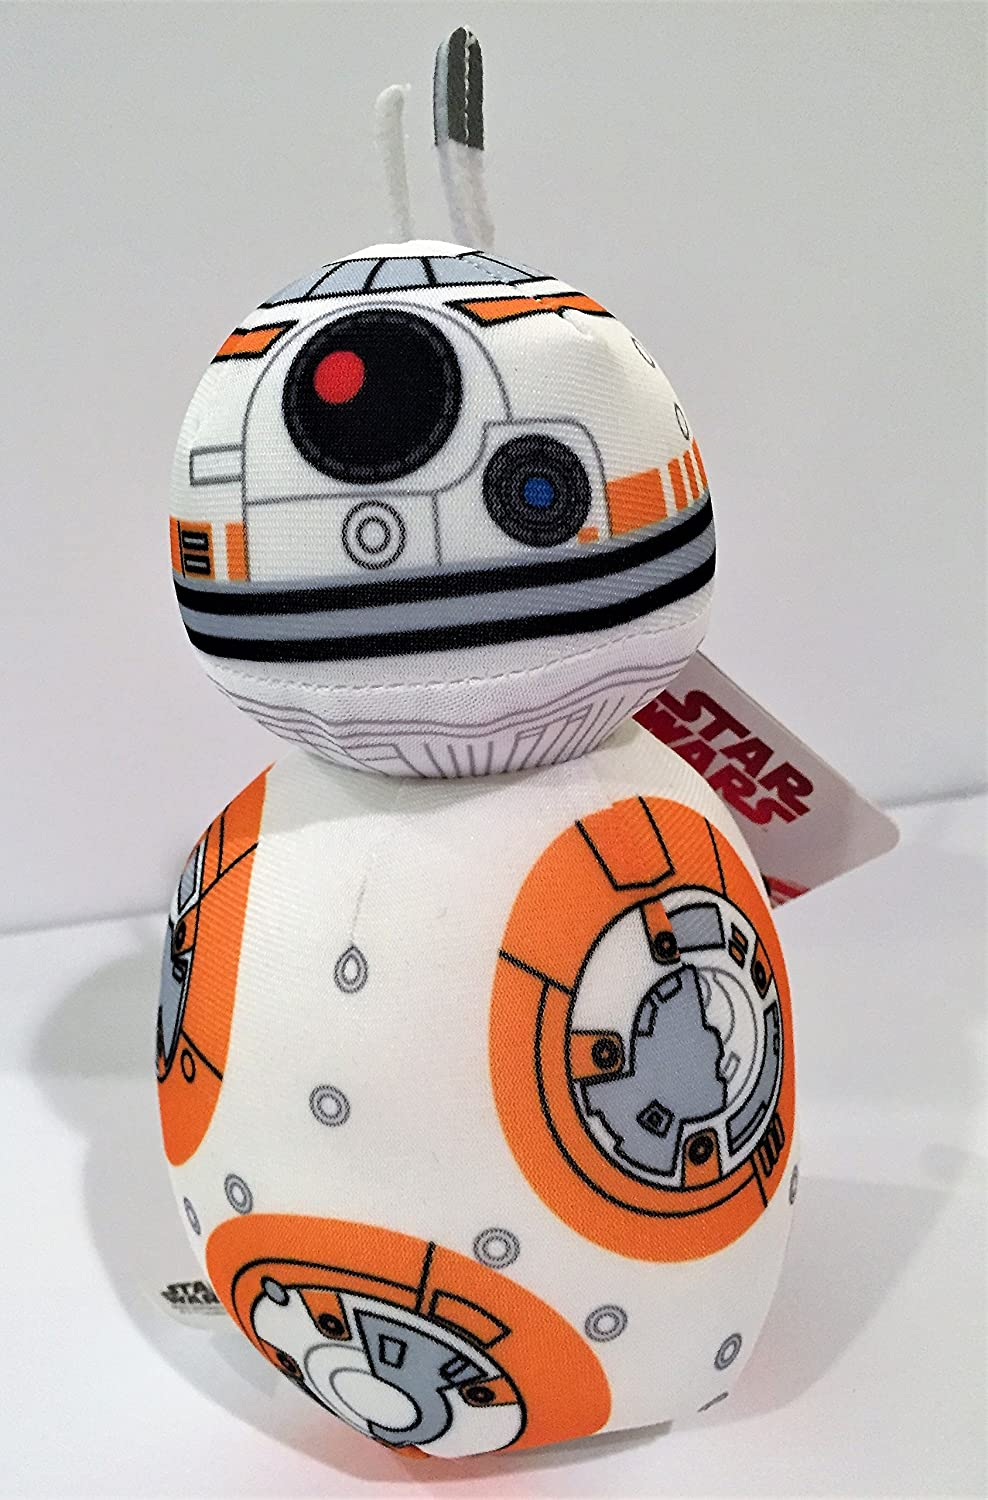 1190ed8ea711 Amazon.com  7 Star Wars Characters (BB-8)  Toys   Games